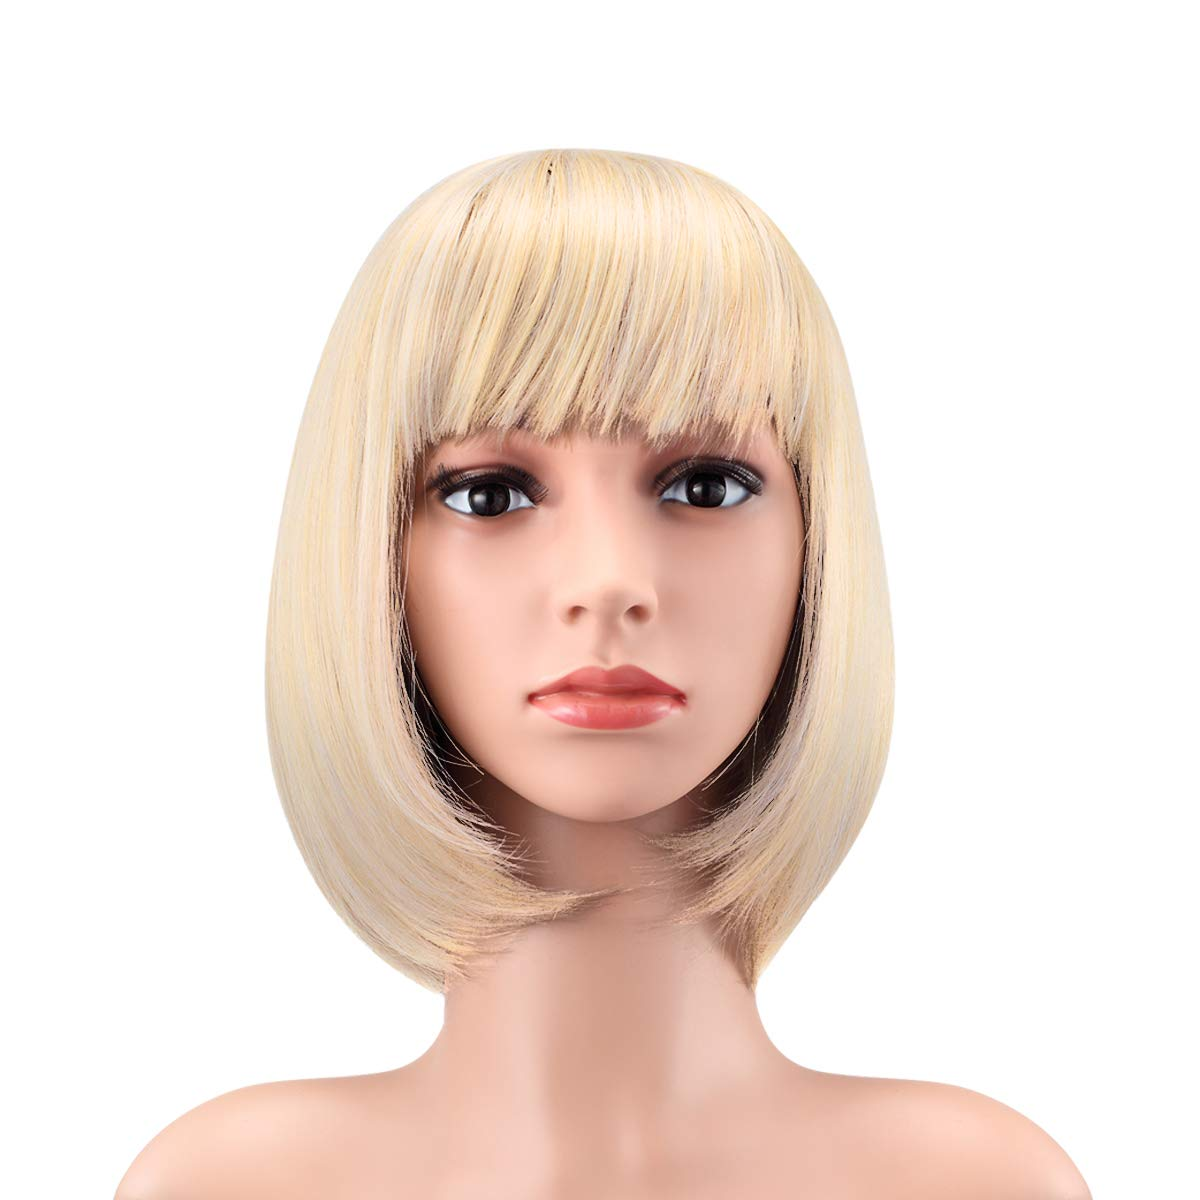 """WENDY HAIR Heat Resistant Short Bob Hair Wigs 12"""" Straight with Flat Bangs Synthetic Colorful Daily Cosplay Party Wig for Women Natural As Real Hair, Blond"""